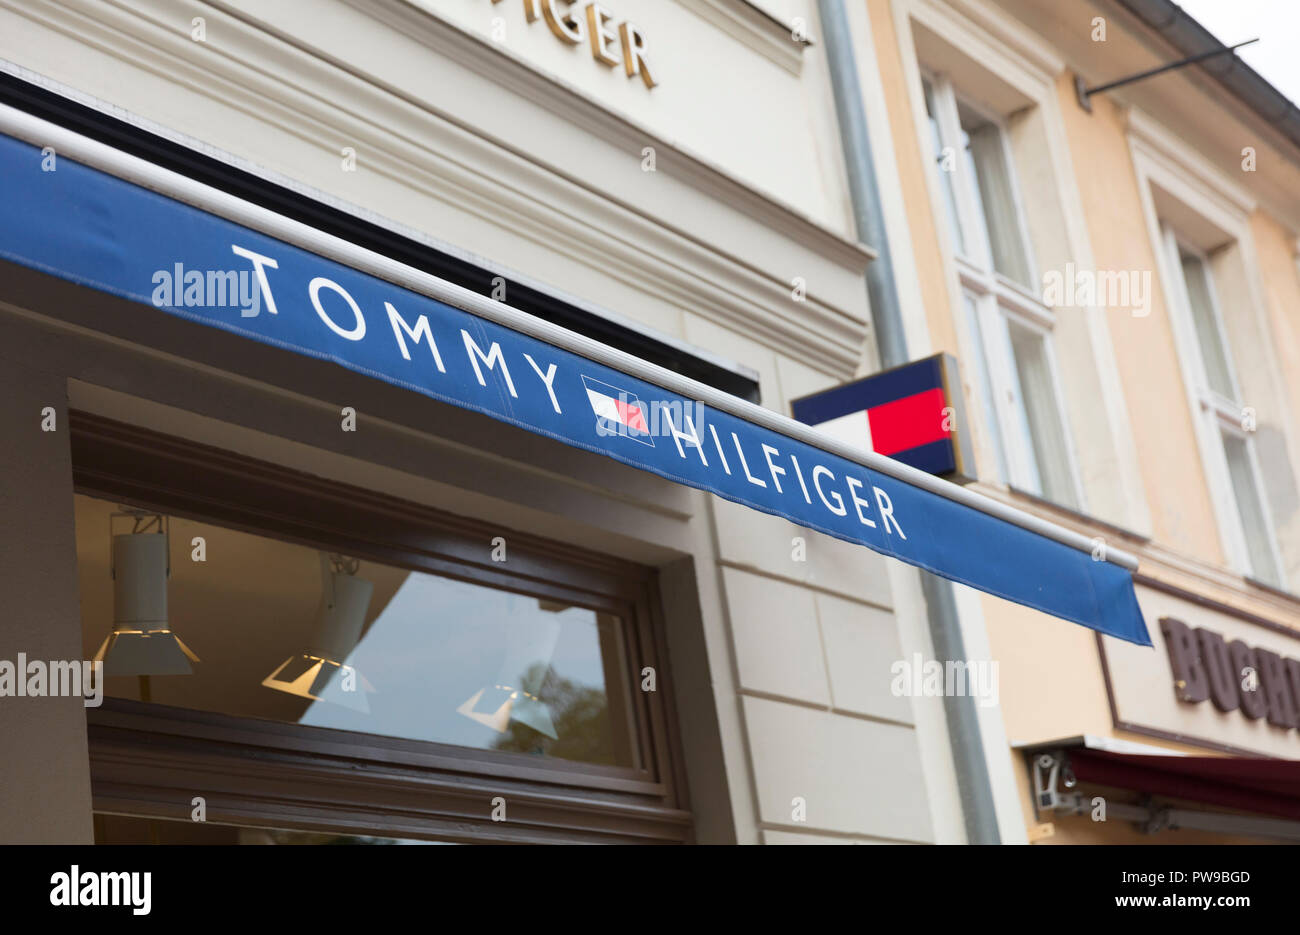 5a9af40c Potsdam, Berlin, Europe: 20th August 2018: Tommy Hilfiger store sign - Stock